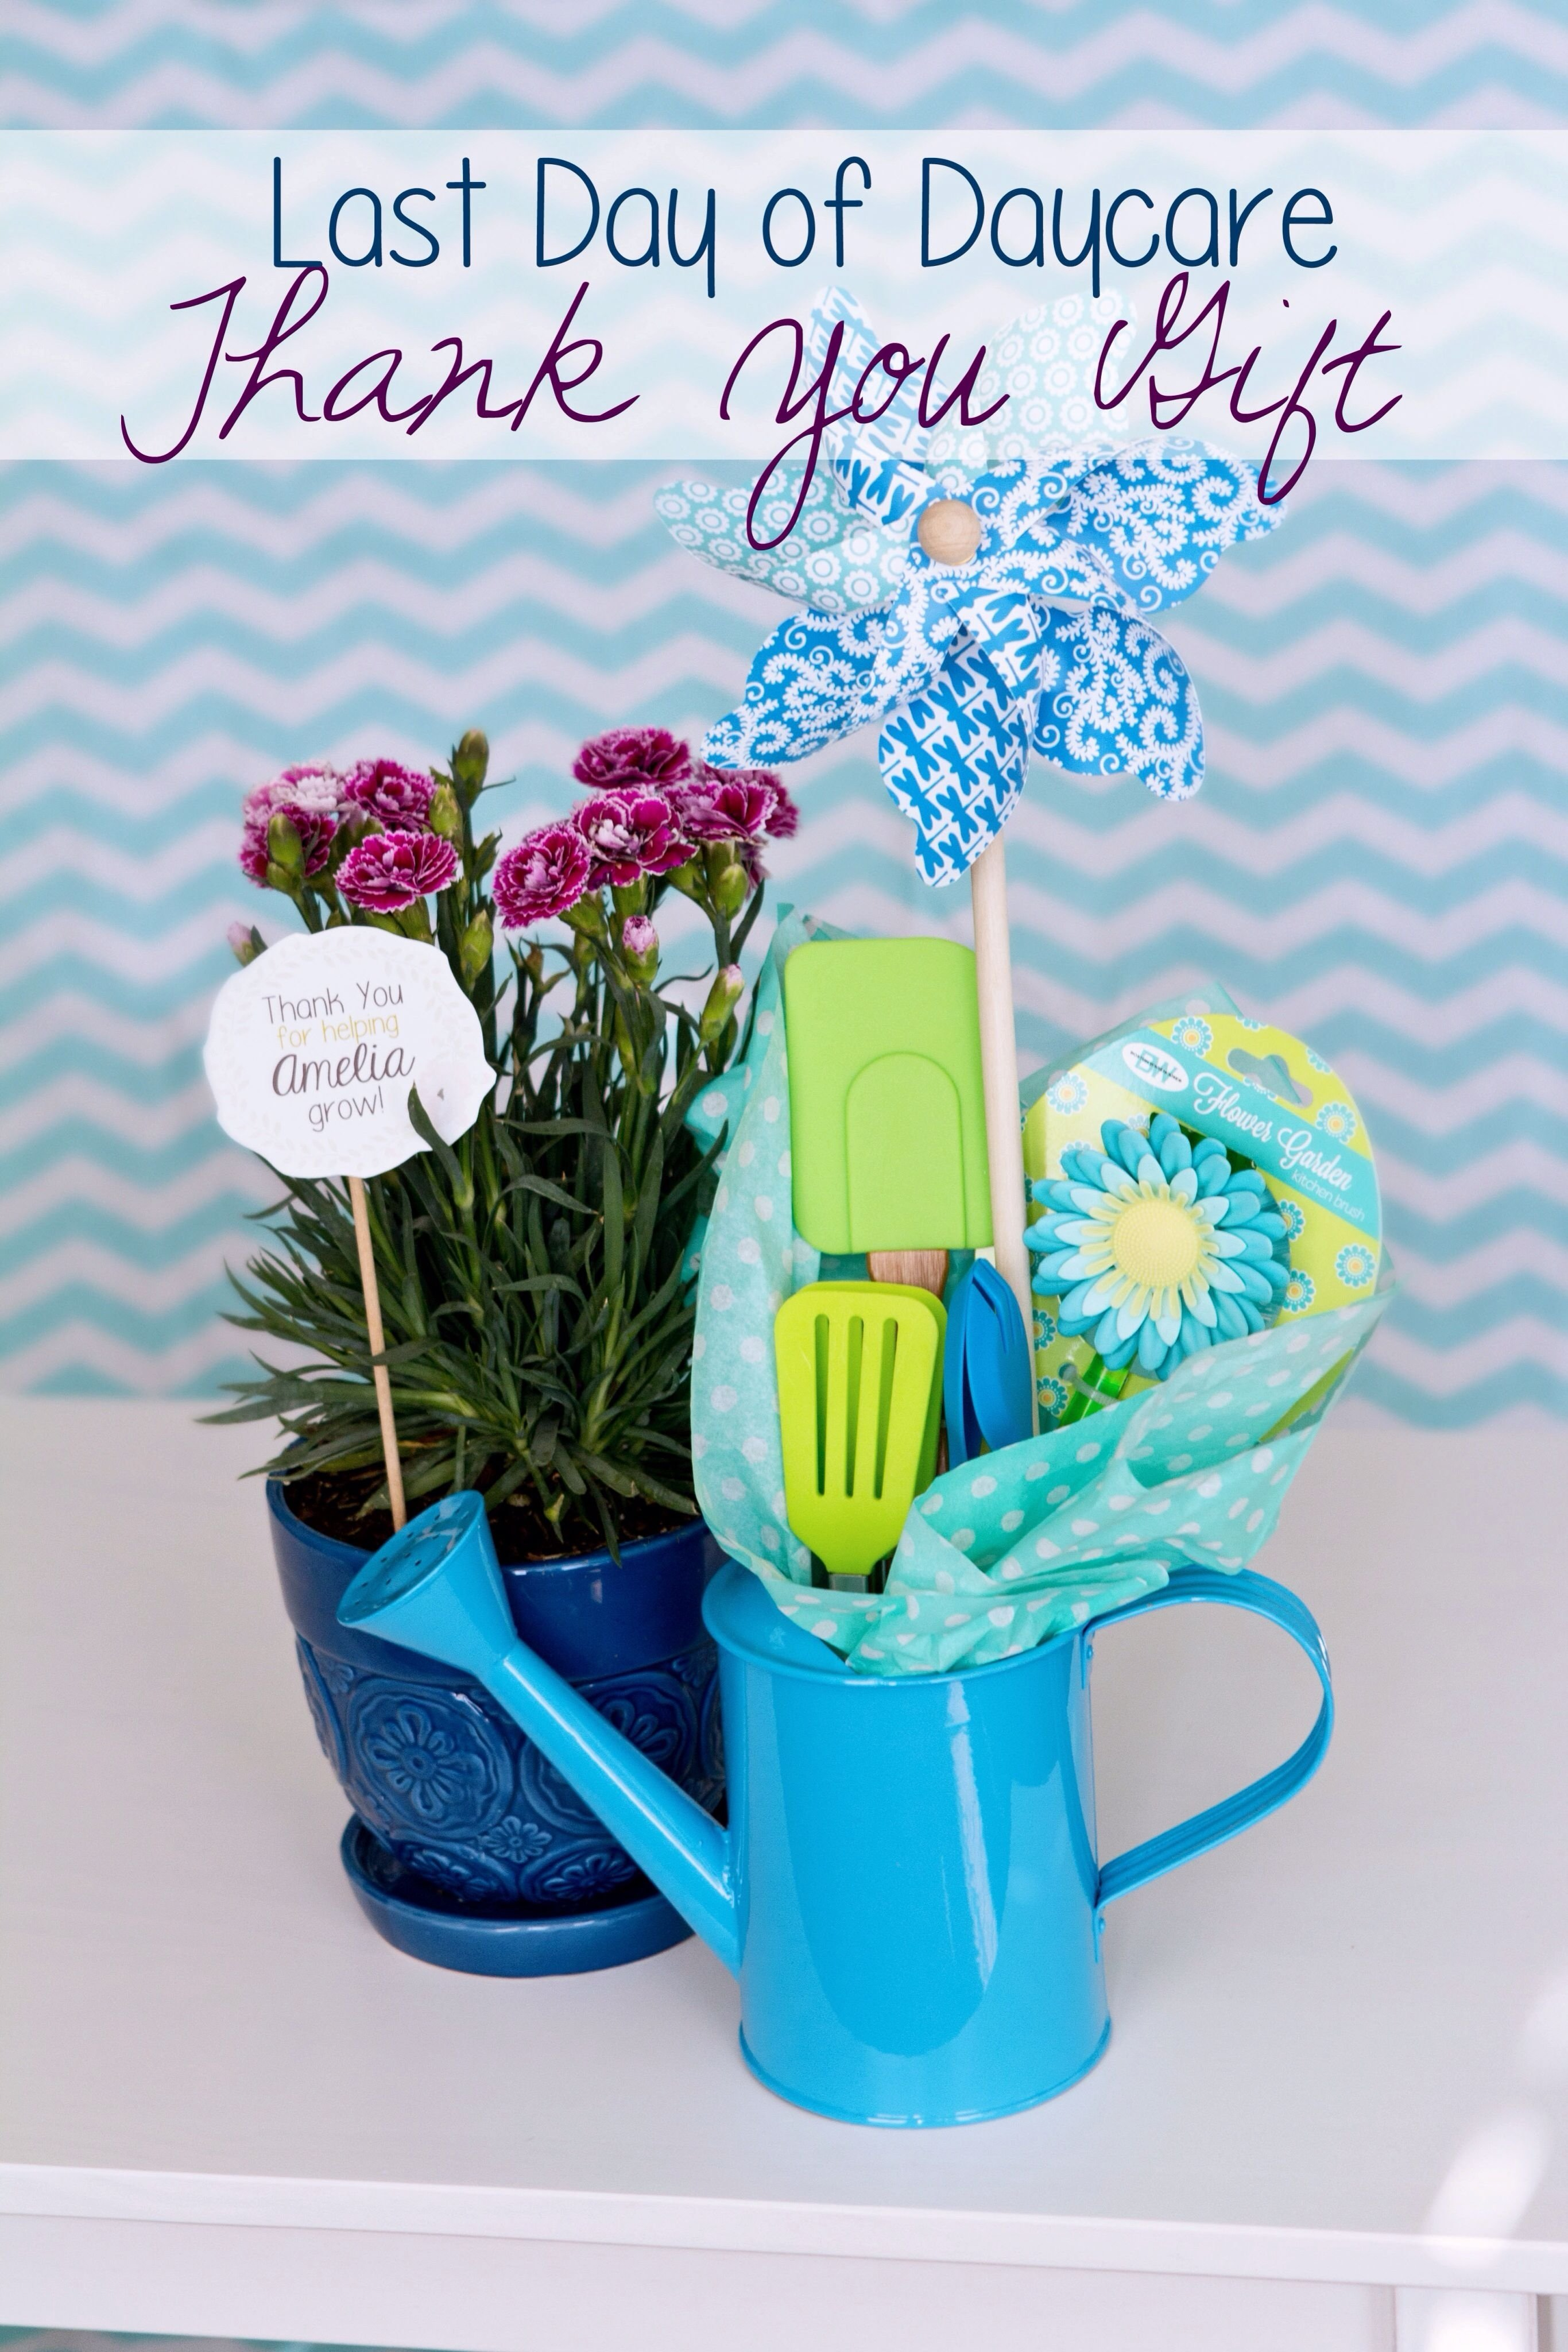 10 Wonderful Gift Ideas For Daycare Provider last day of daycare gift the tag says thank you for helping 3 2020